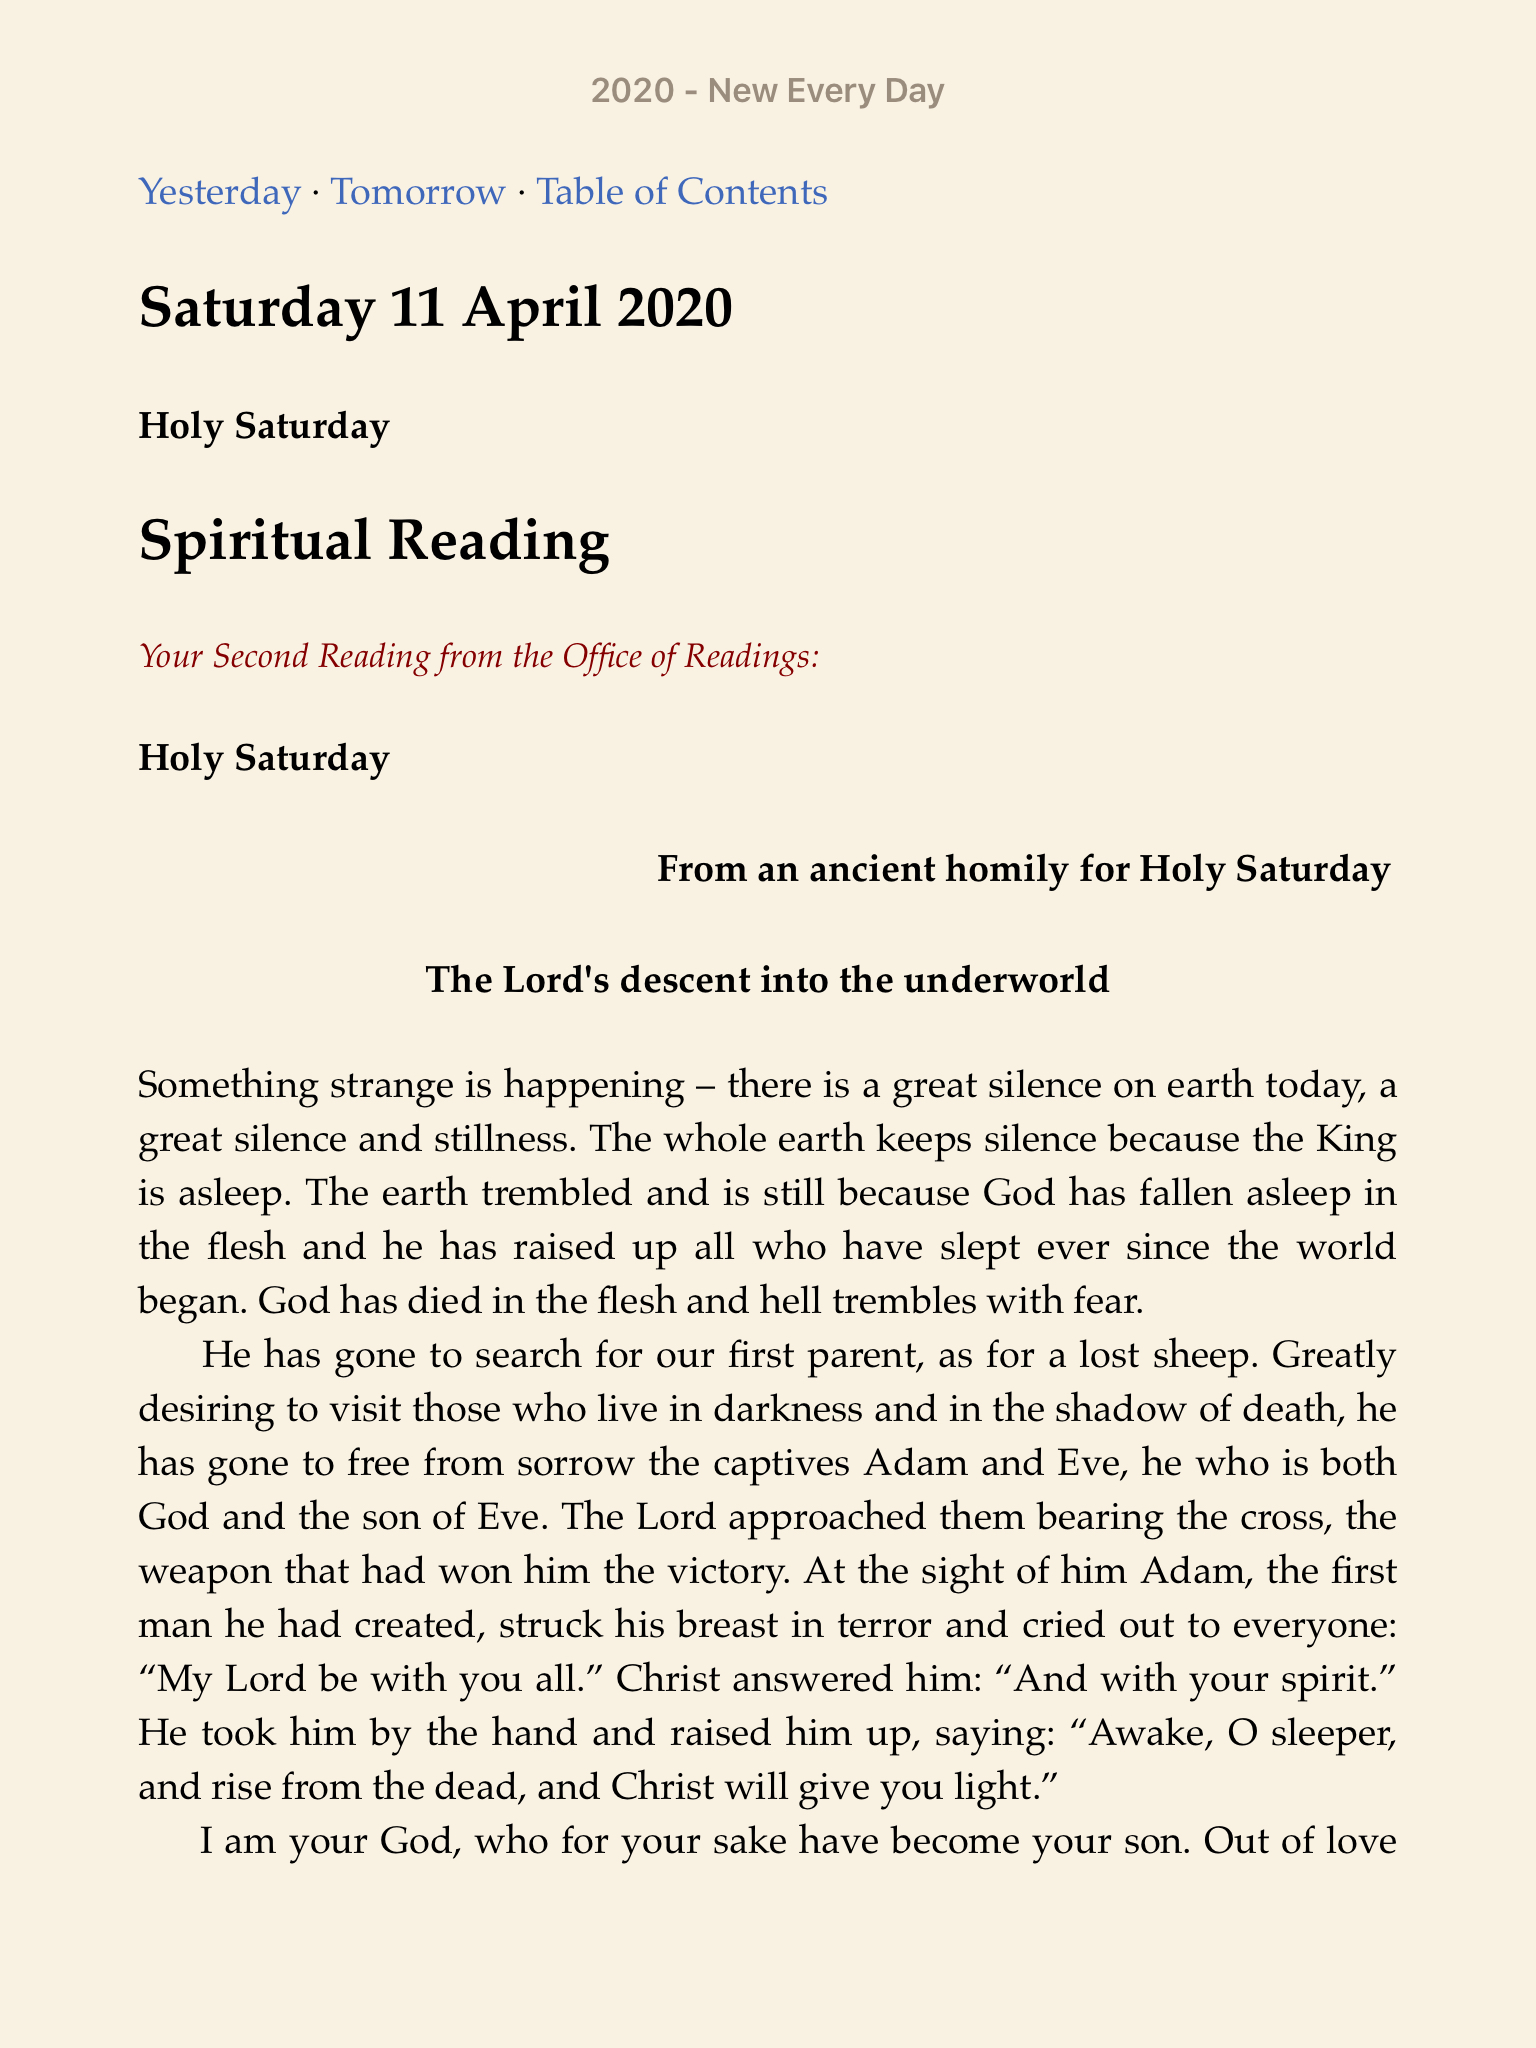 Sample page from Holy Saturday